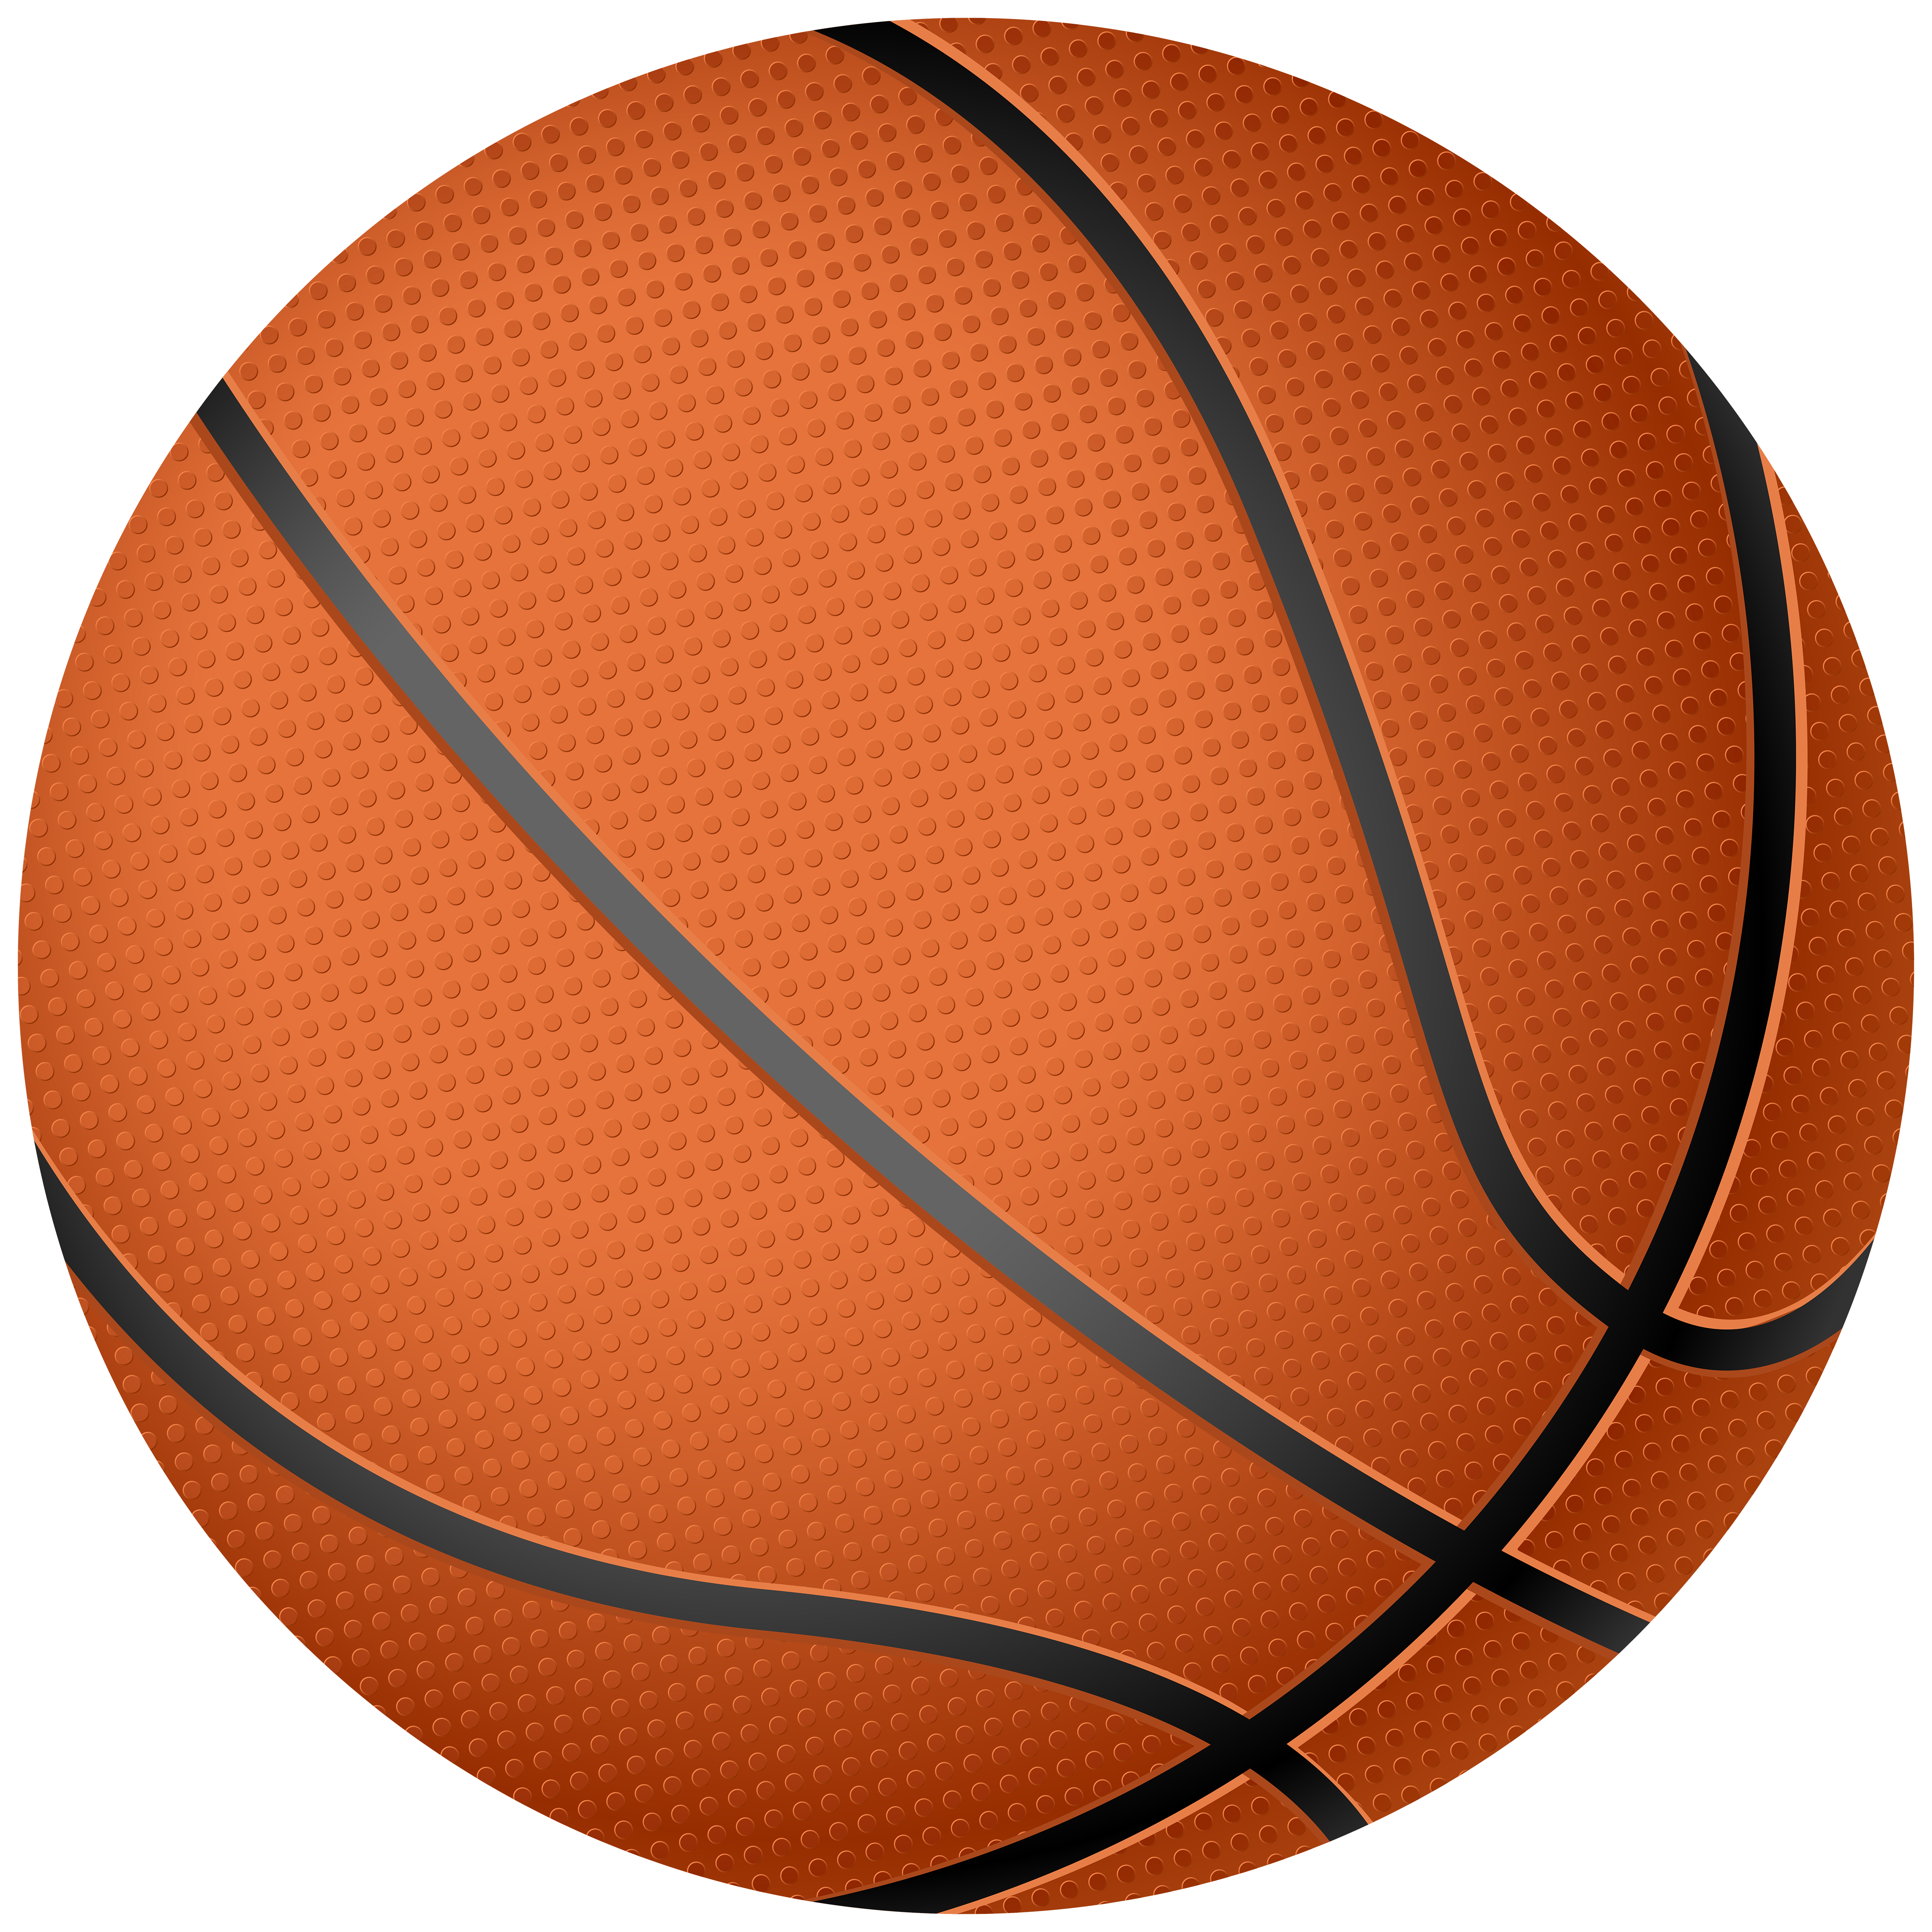 picture free stock Png clip art best. Books clipart basketball